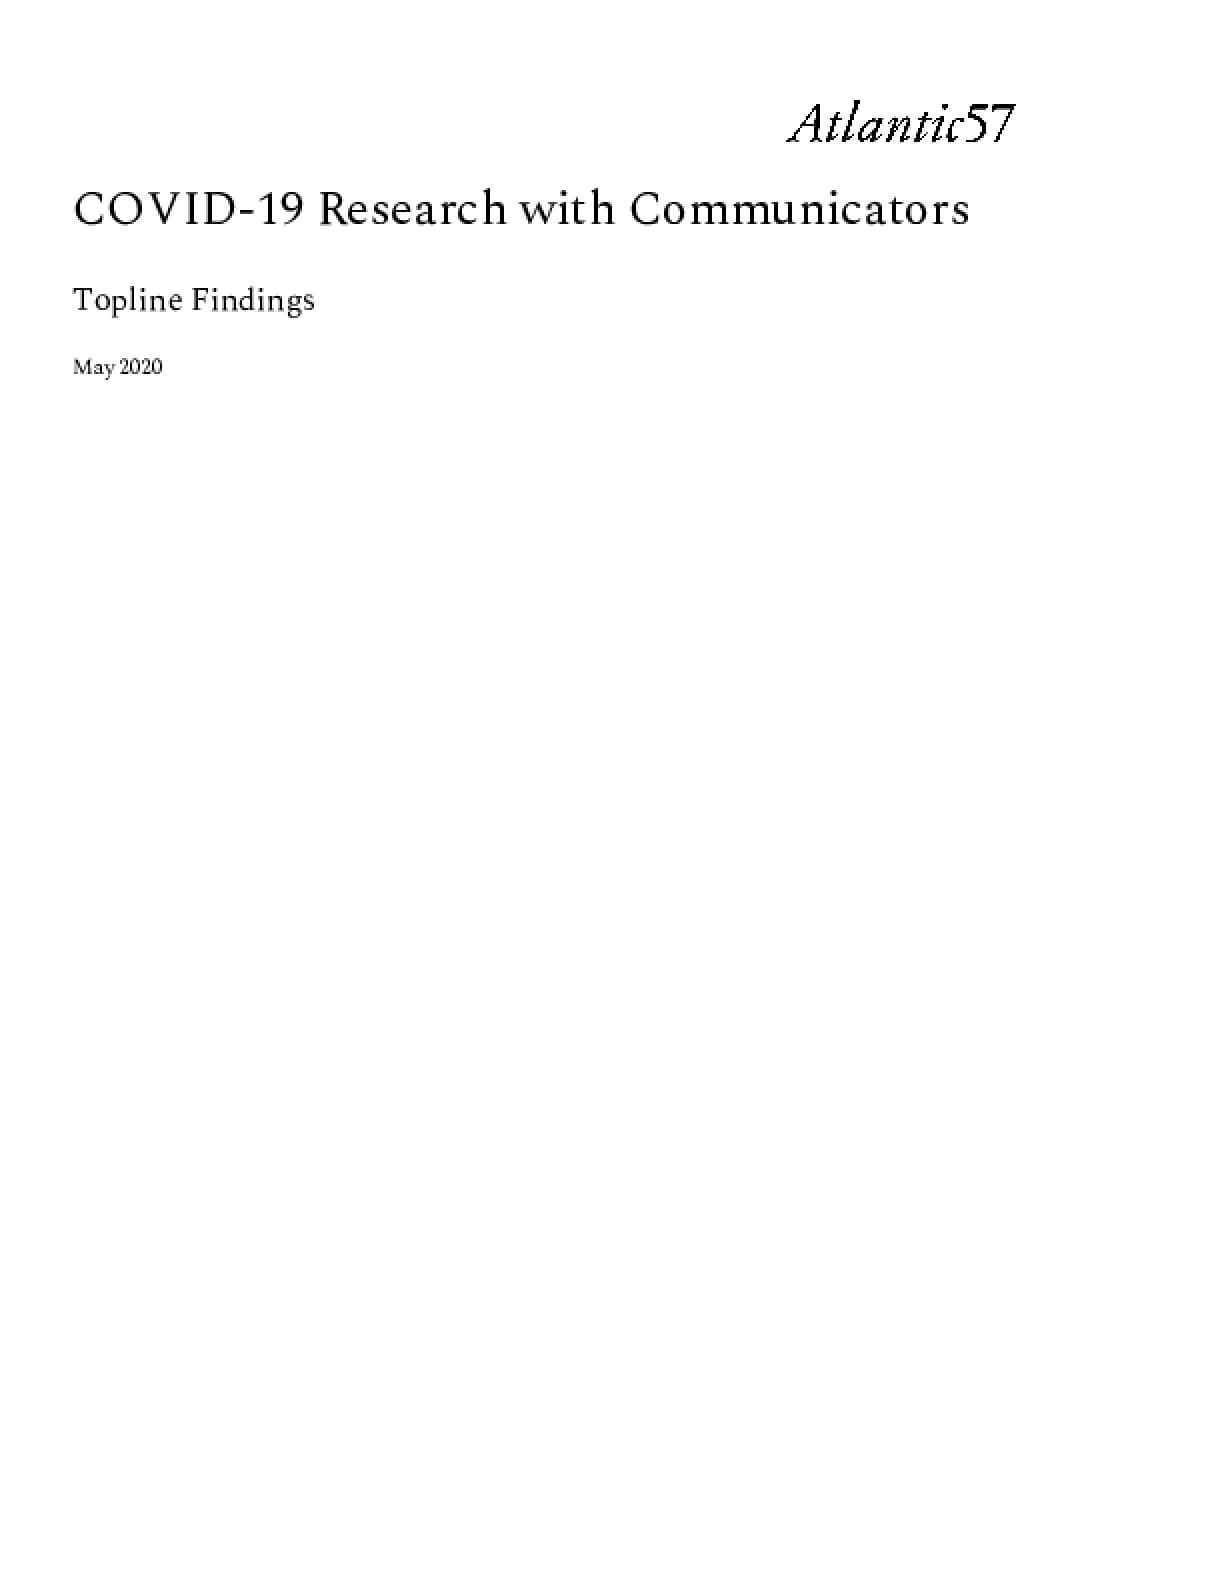 COVID-19 Research with Communicators: Topline Findings